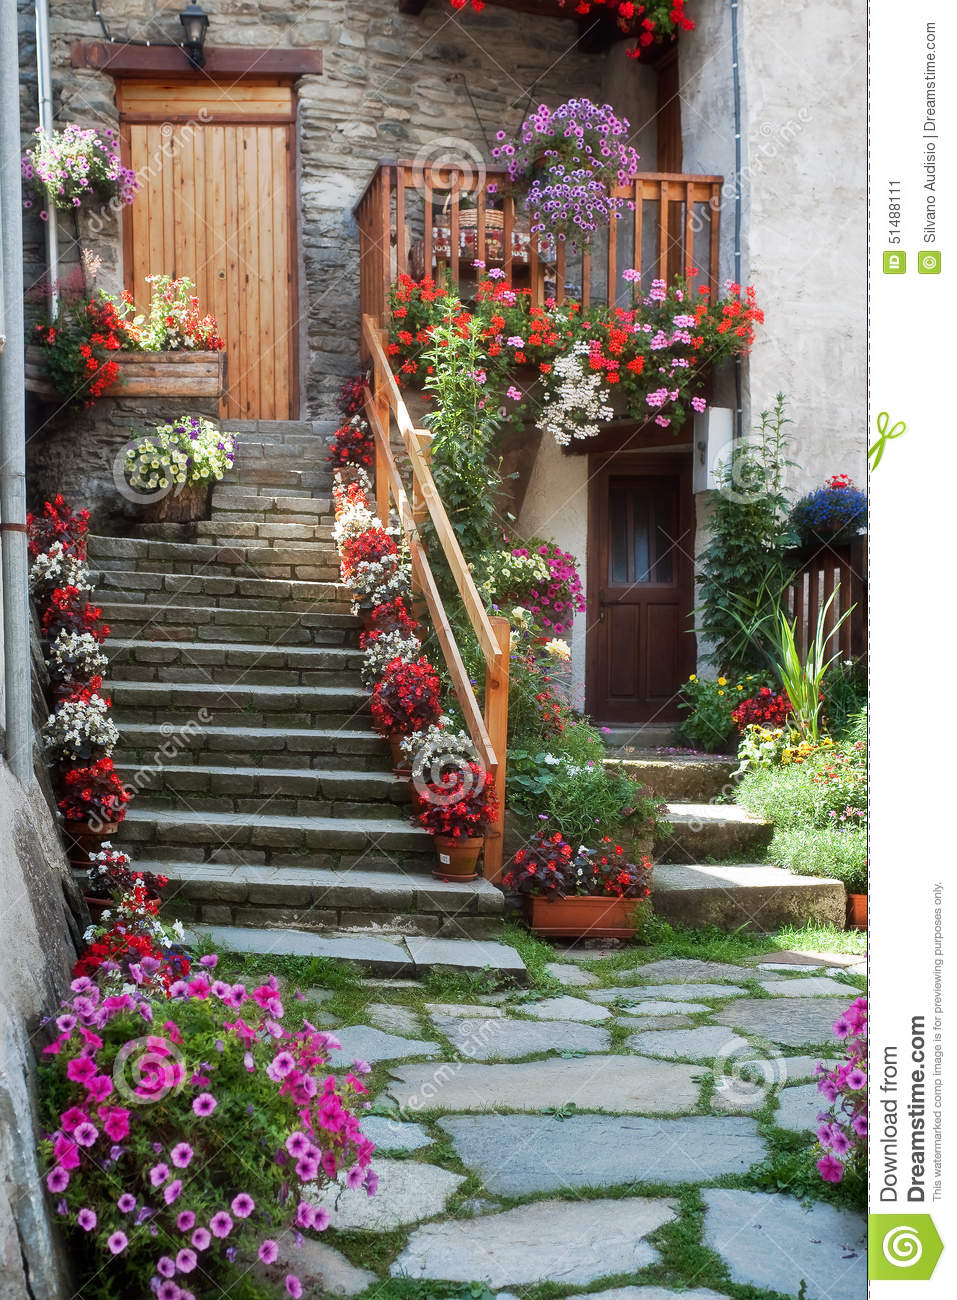 Staircase With Flowers Stock Photo Image 51488111